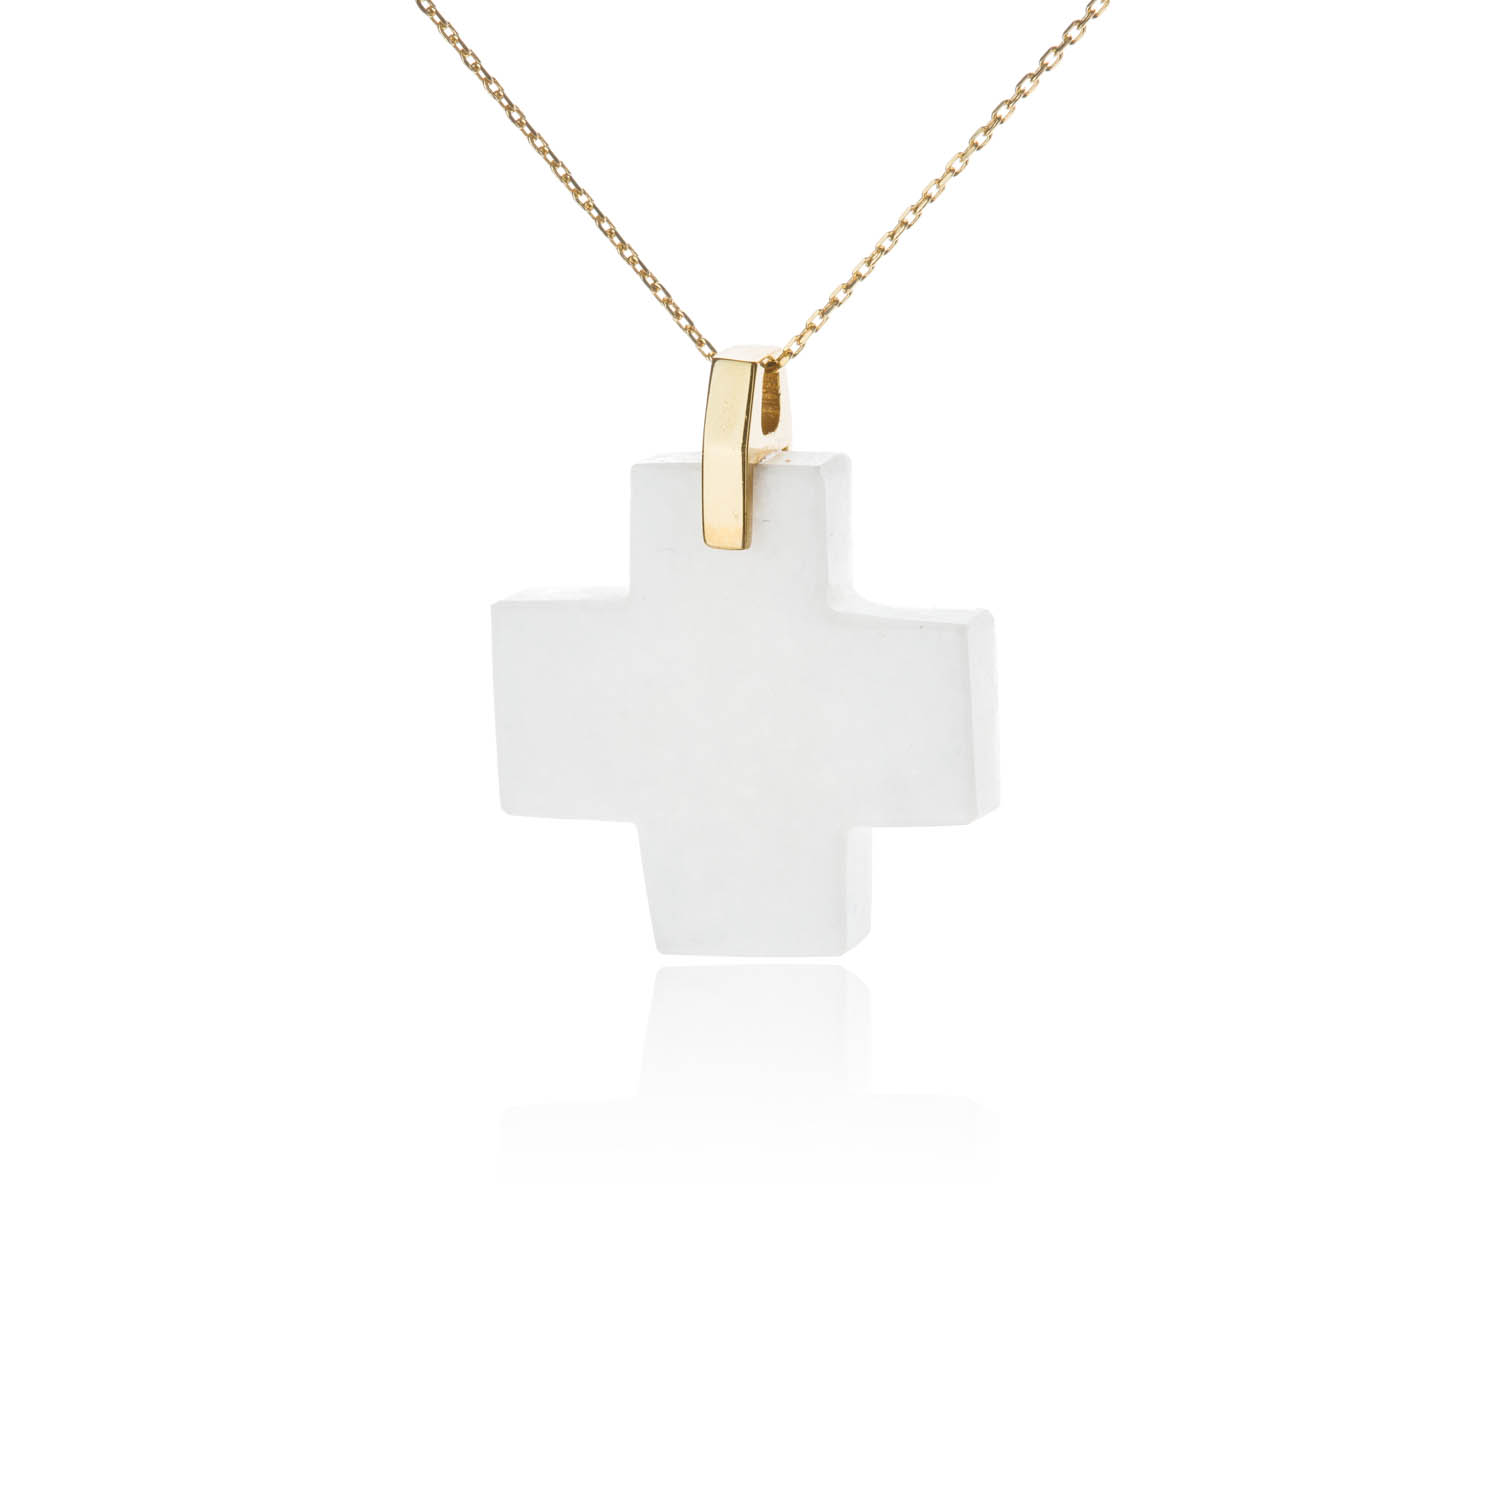 and product necklace gold square anatol cross necklaces diamond jewellery pendant daily r sparkle